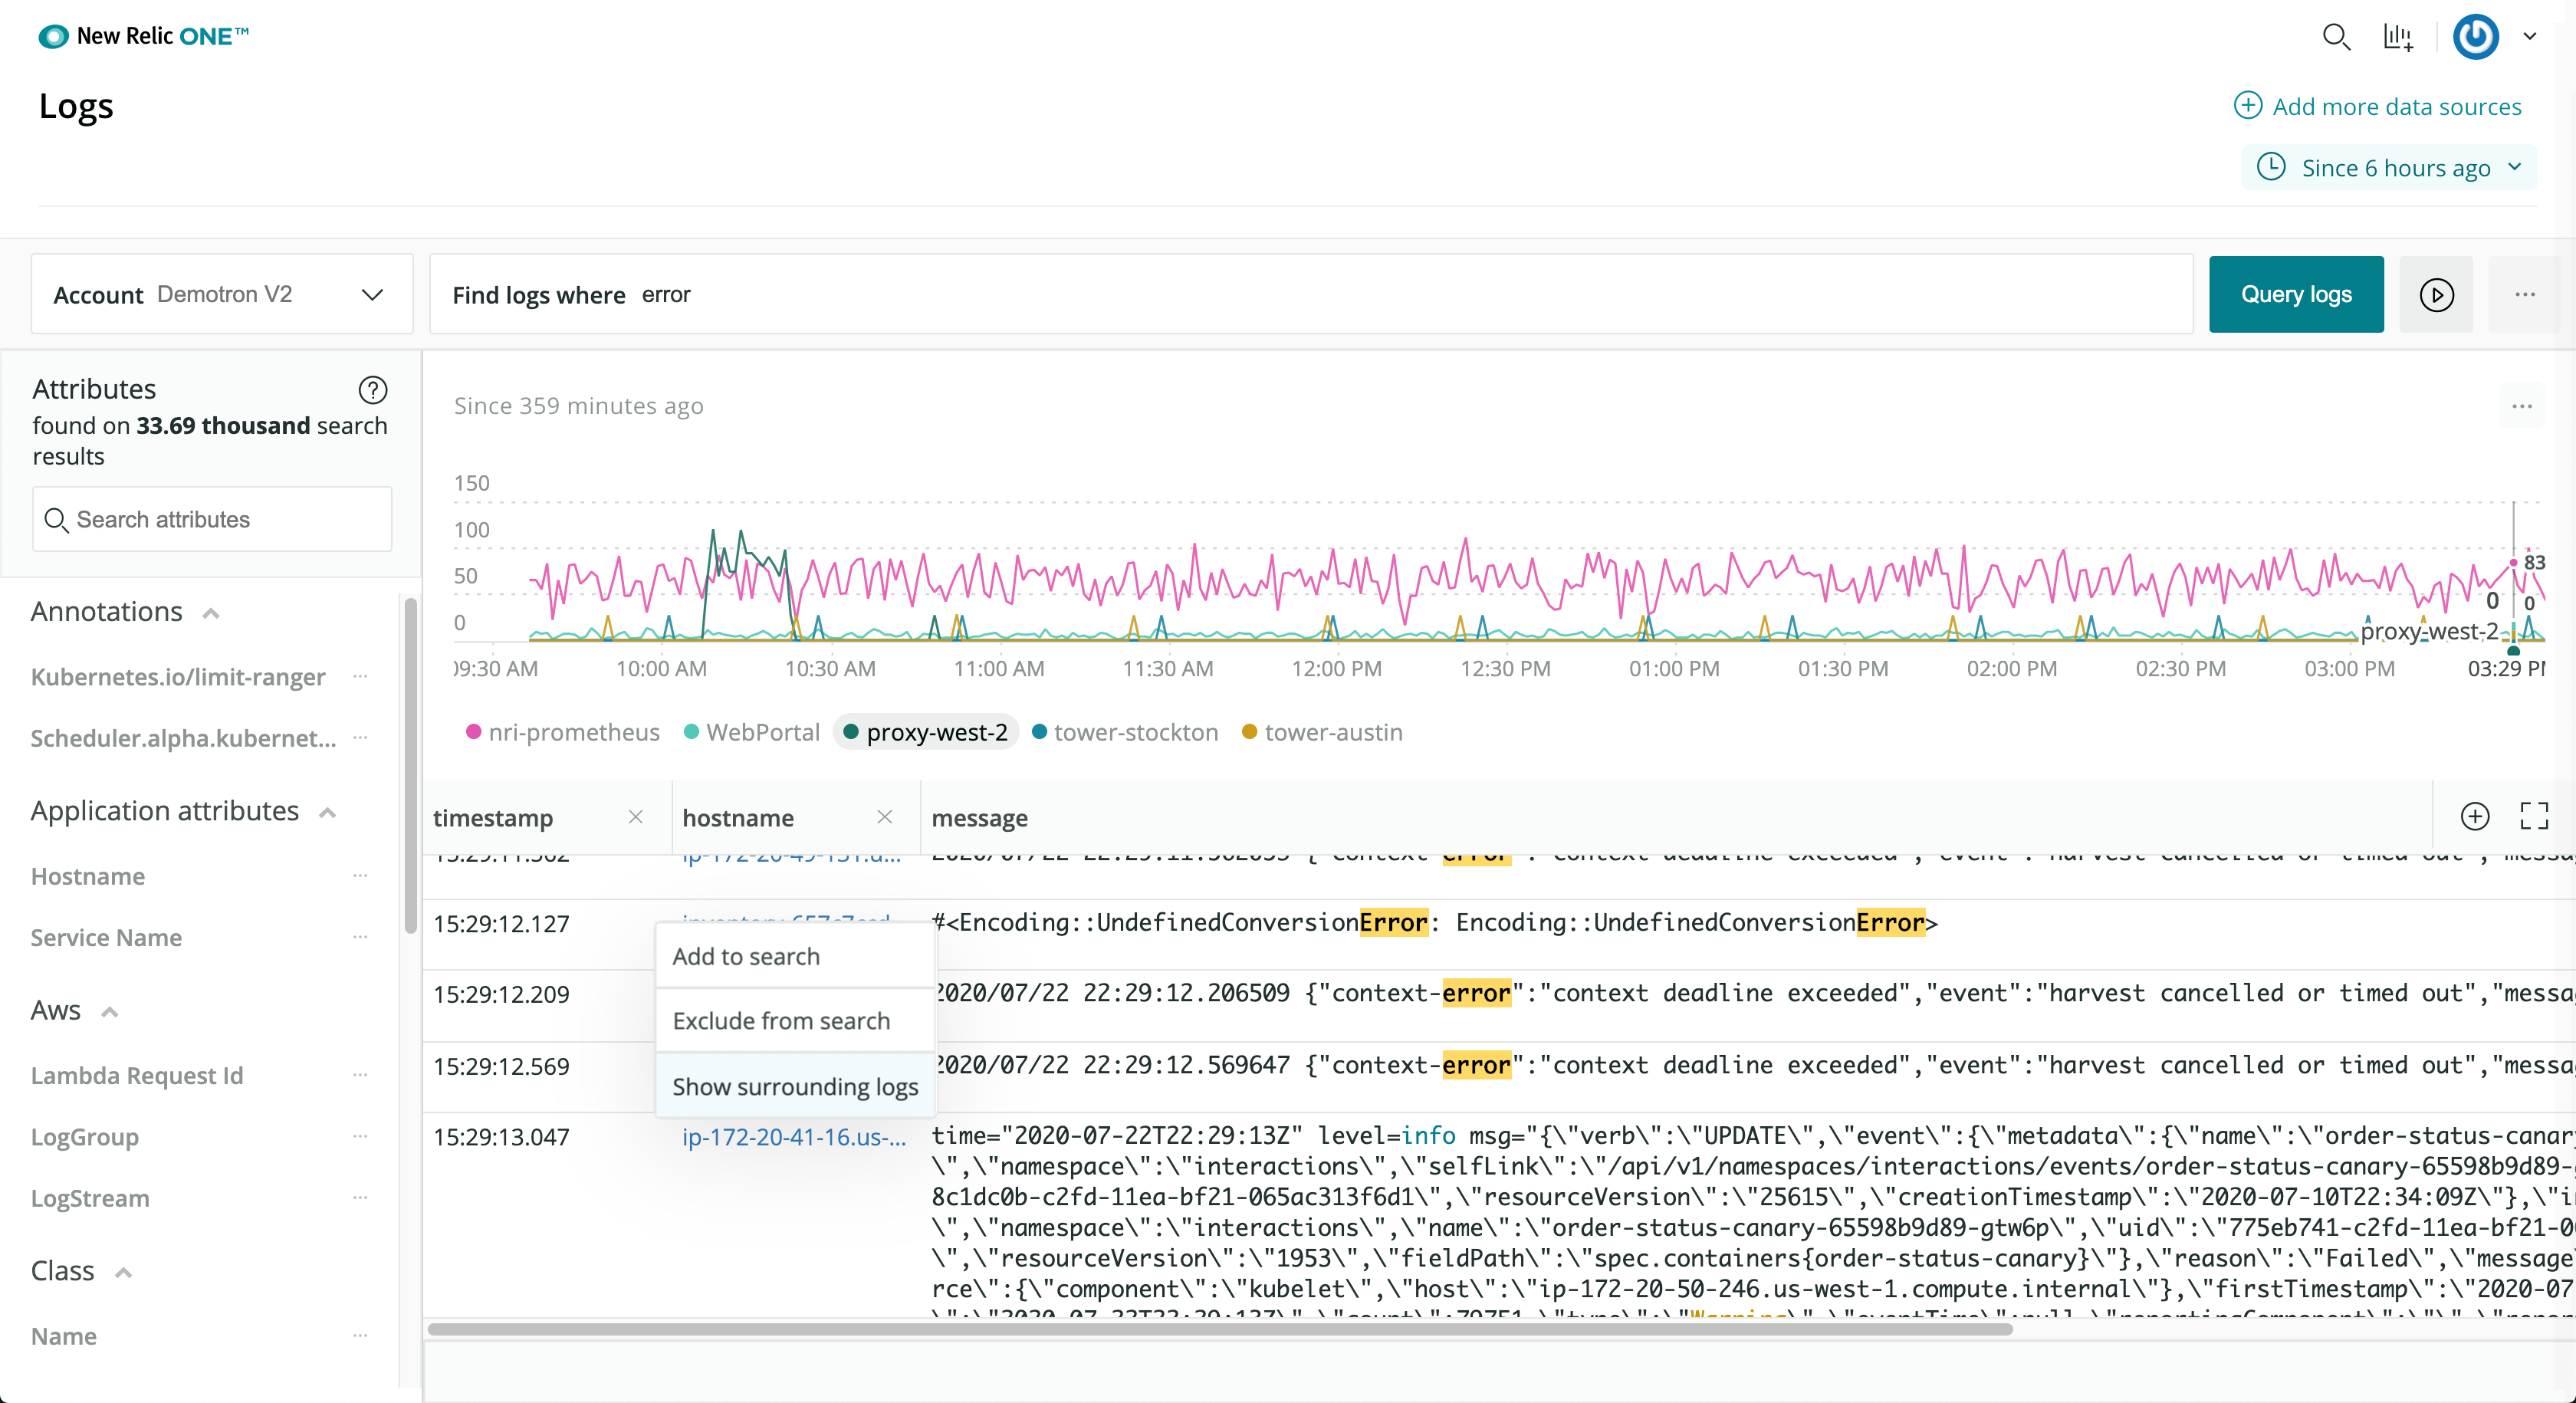 New Relic One log management